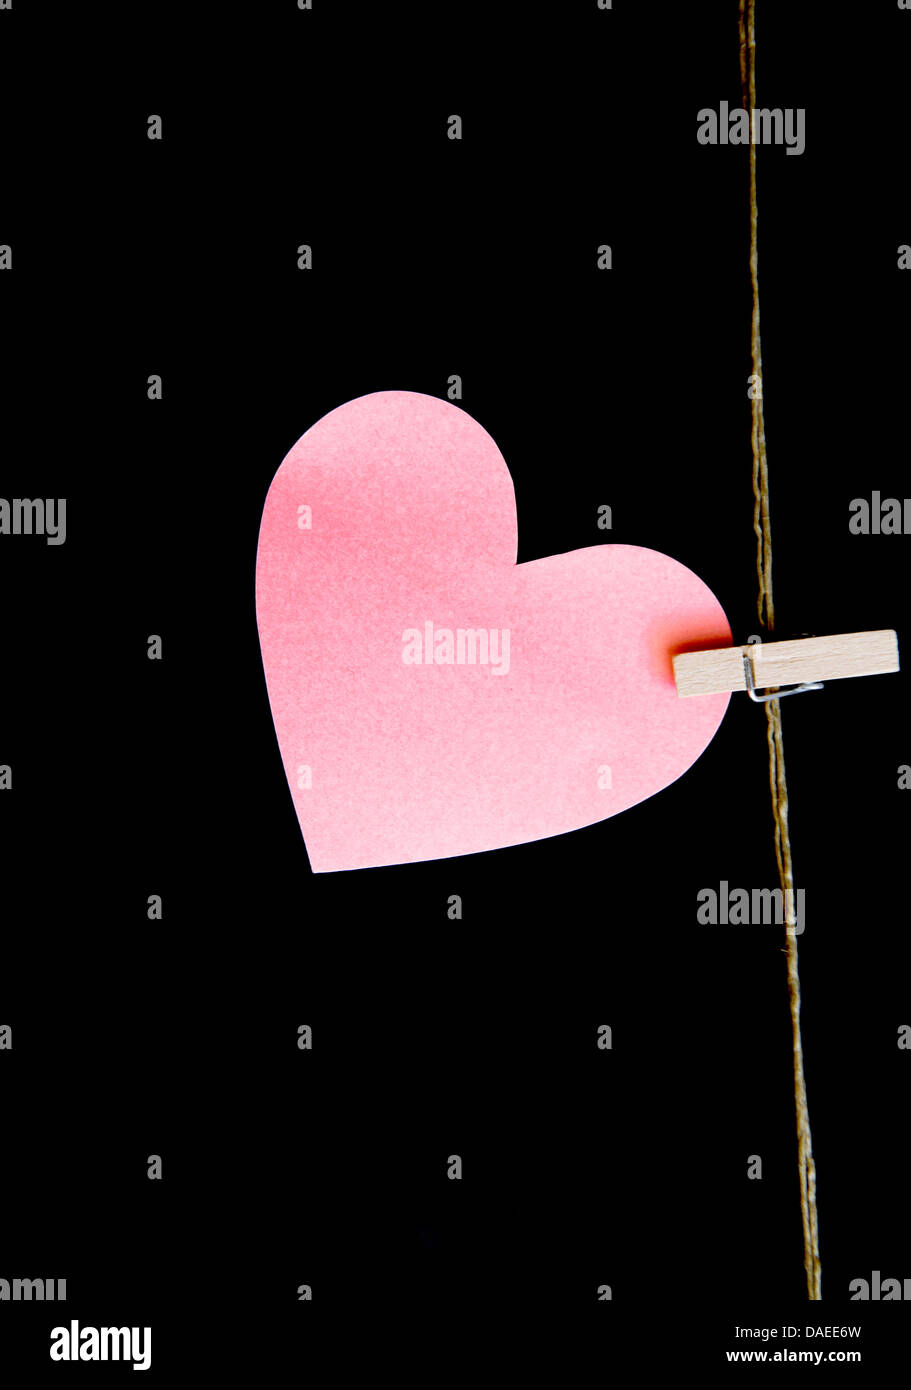 heart with clothespin on black background - Stock Image